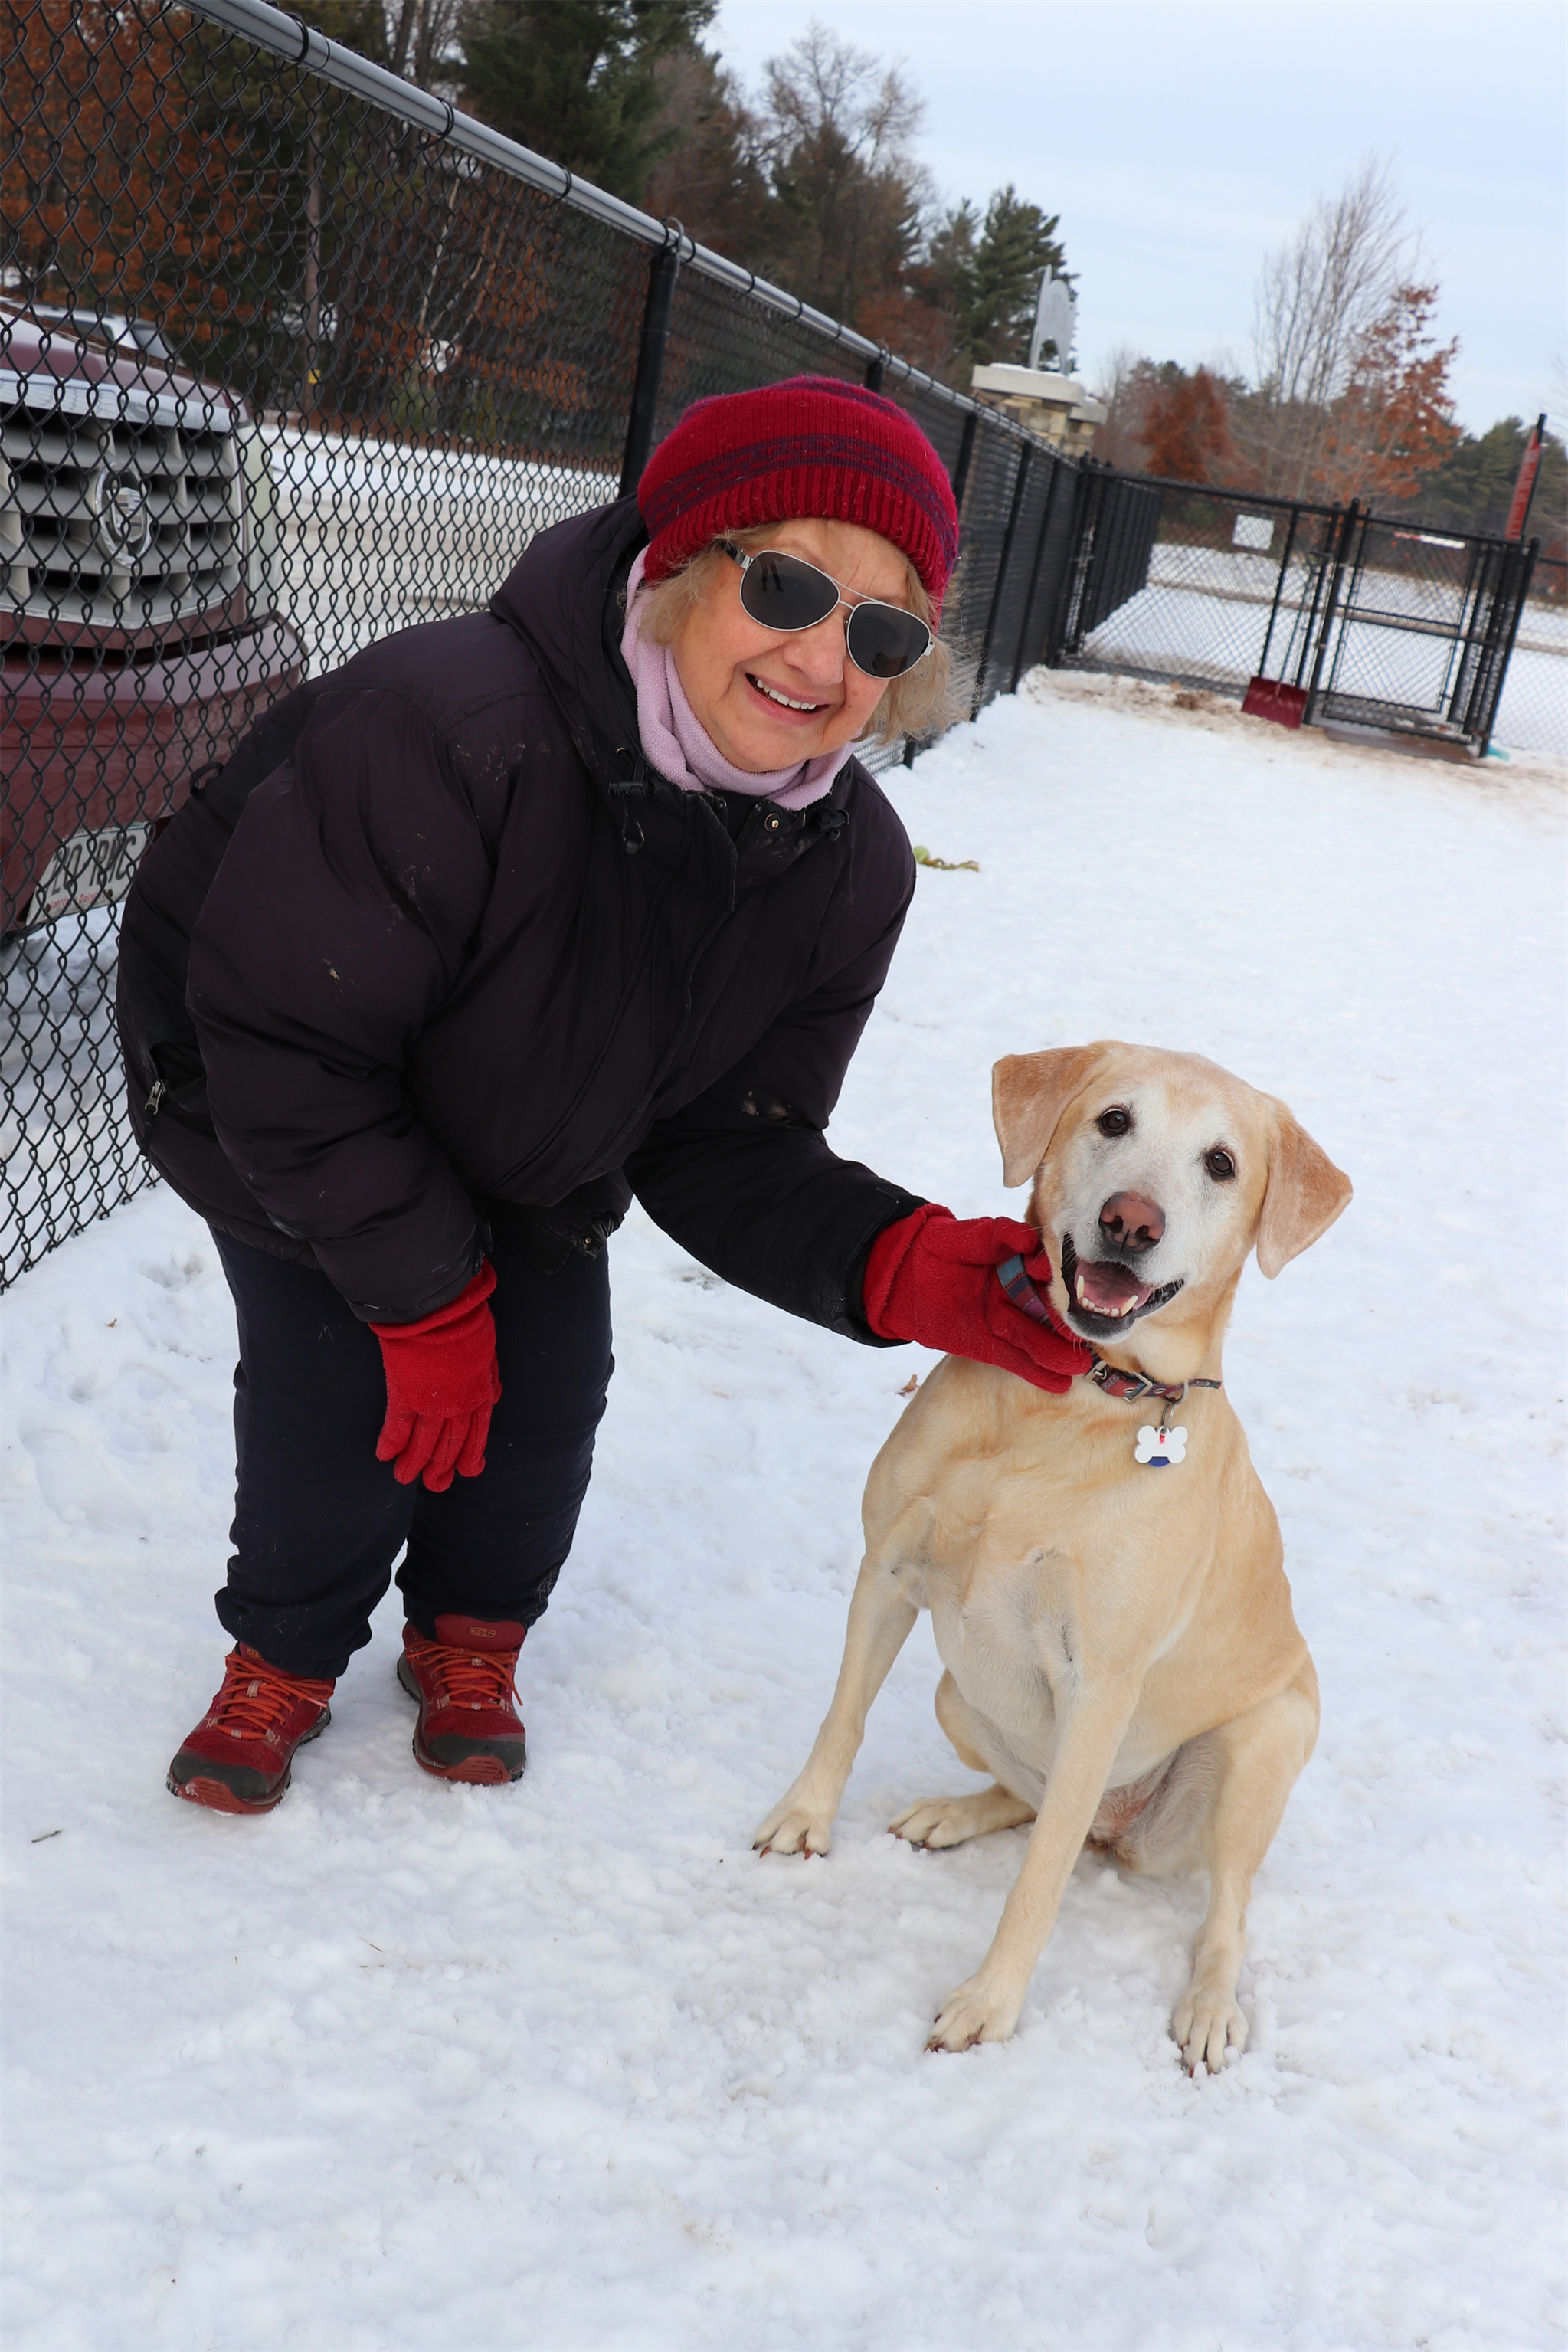 Linda and her dog Emma play at the Lakeland Area Dog Park in Minocqua. Kim Johnson photo